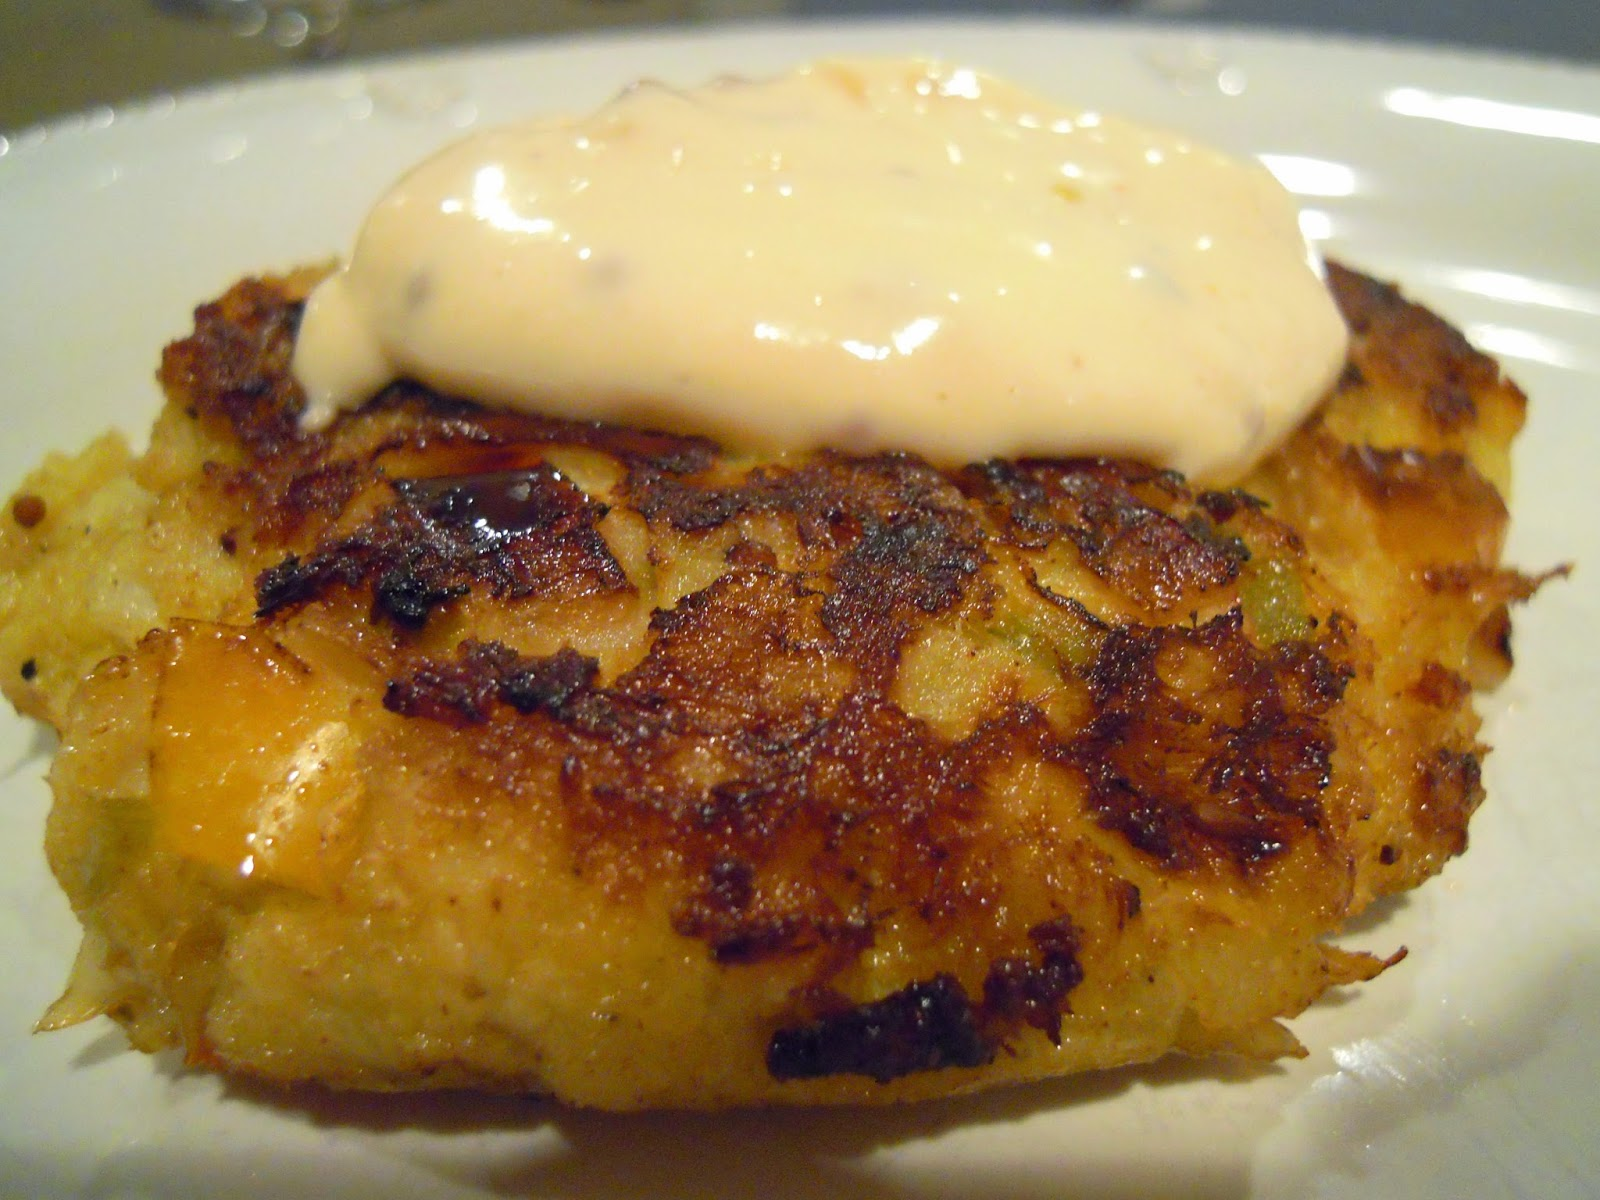 Spicy Mustard Sauce For Crab Cakes